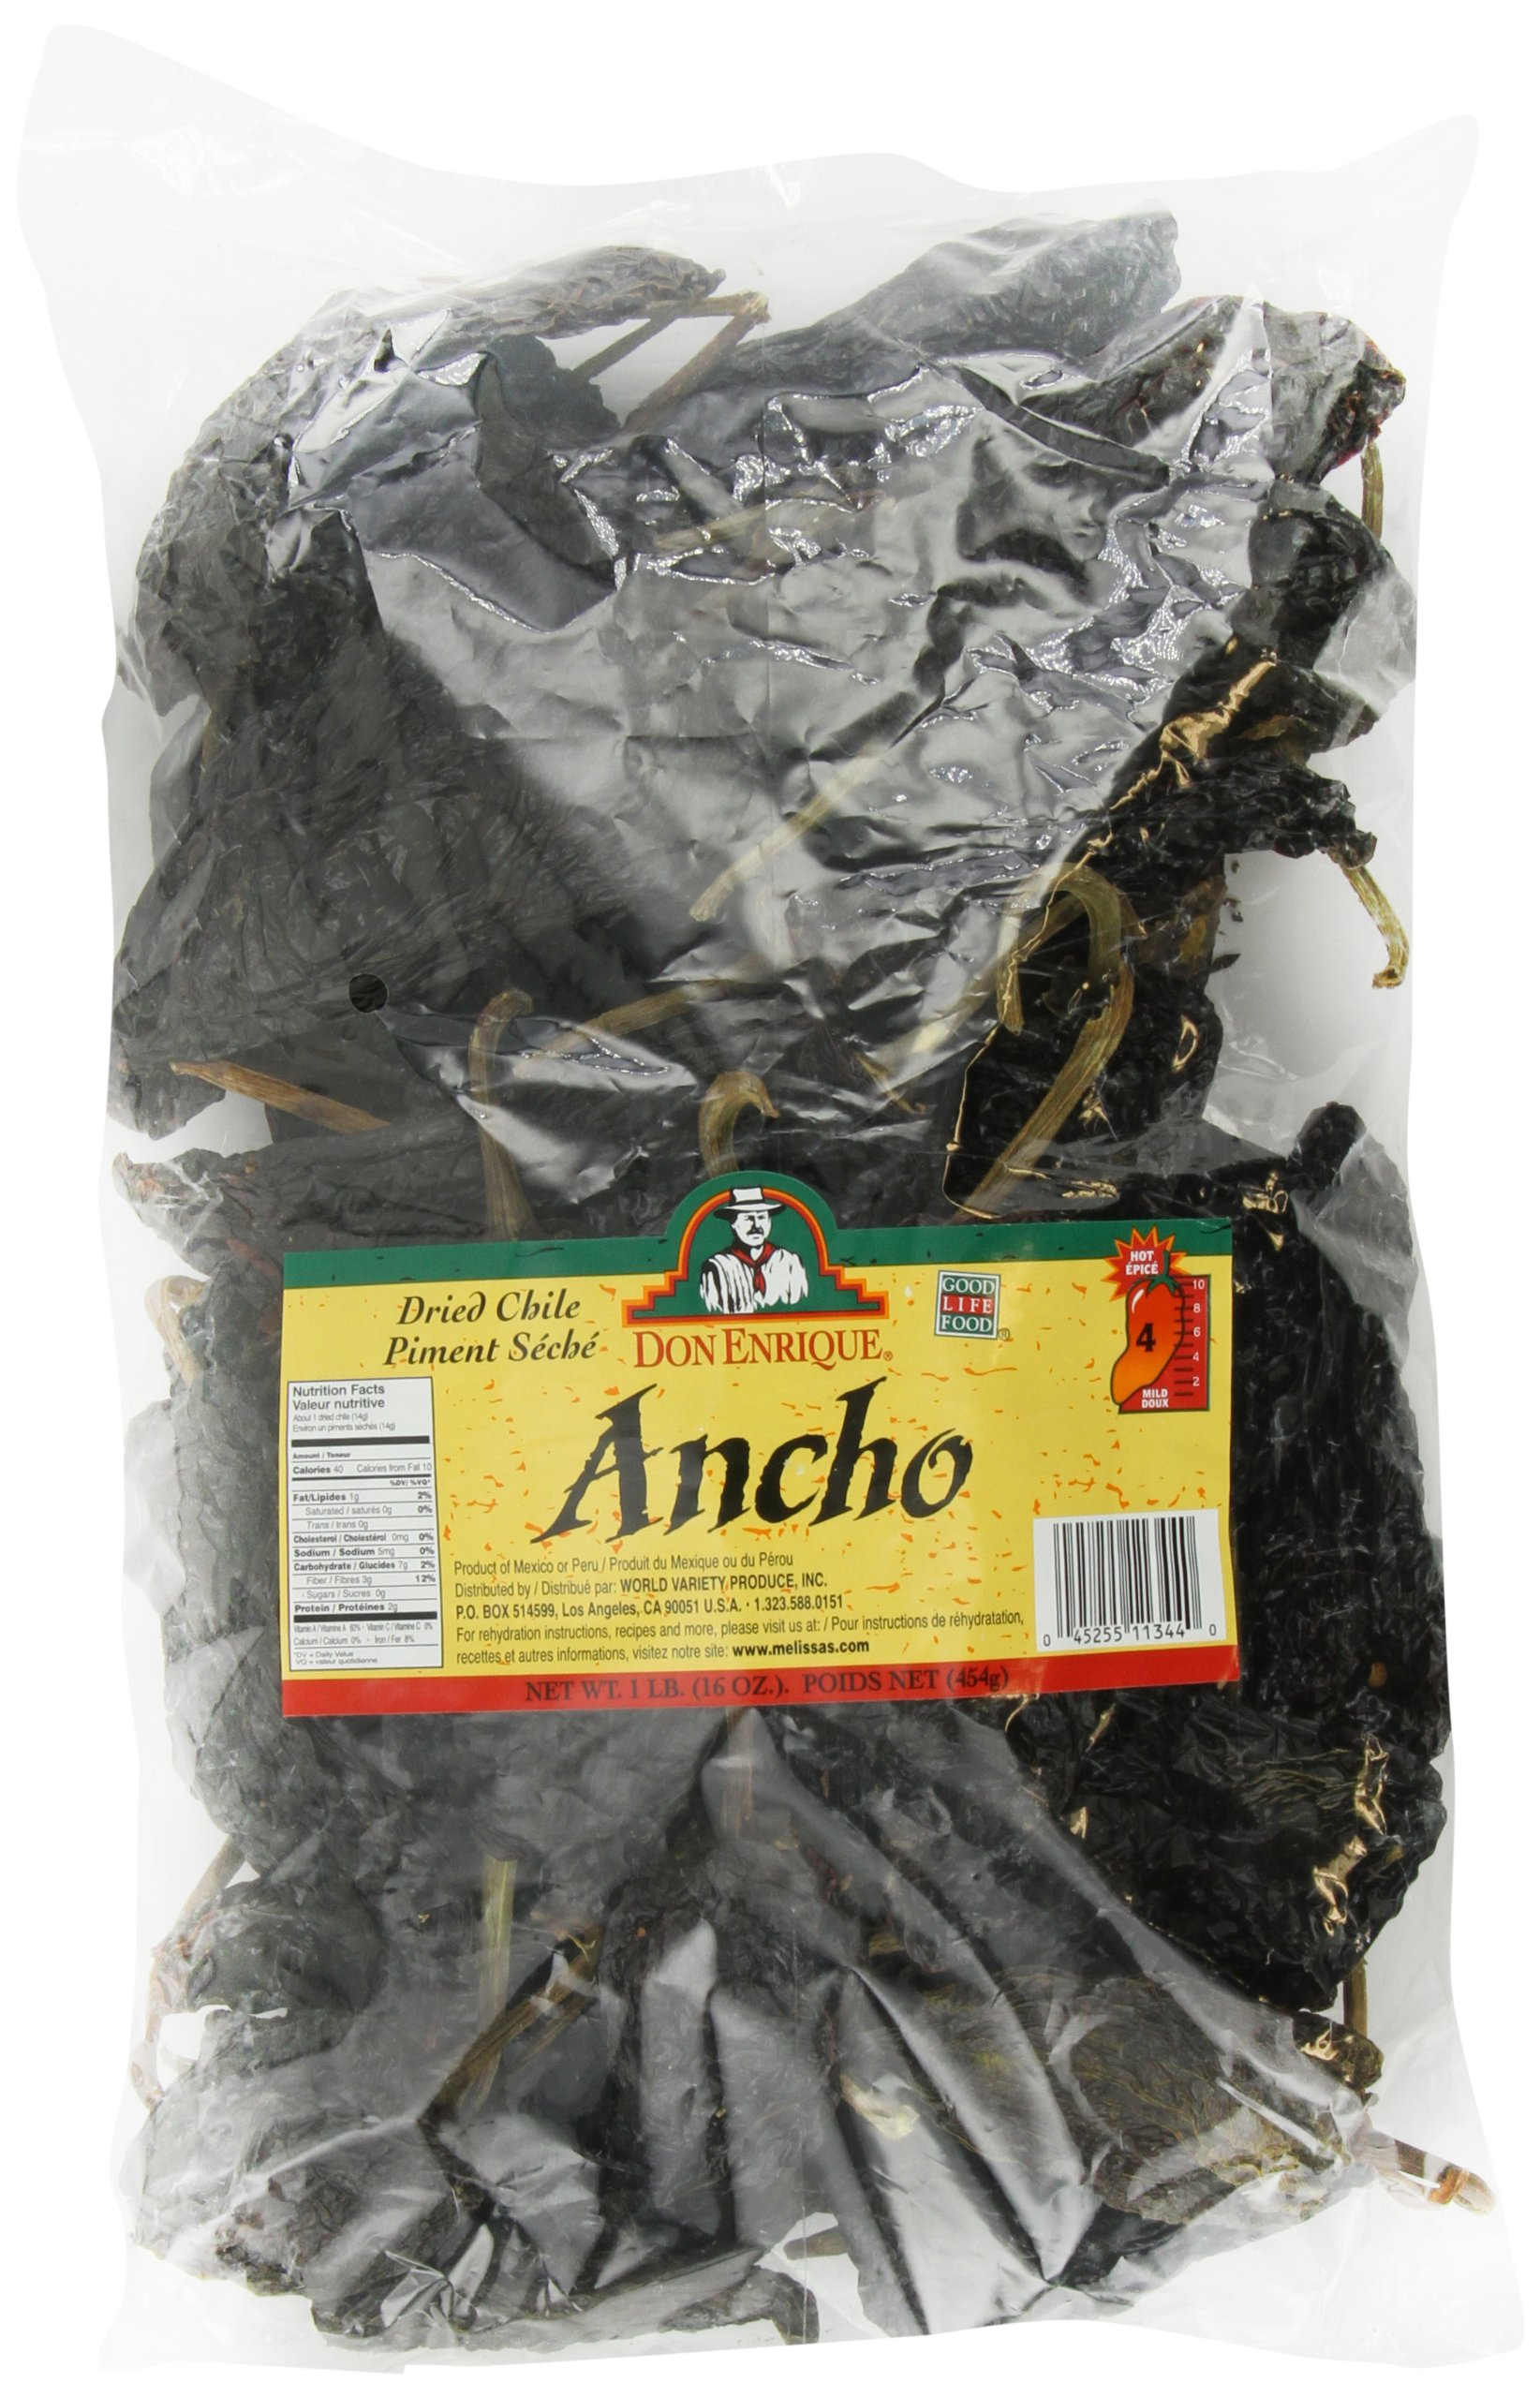 Melissa's Don Enrique Dried Chile Ancho Pasilla 16-Ounce Bag, Dried Ancho Chiles for Spicing and Garnishing in Cooking and Baking, Mildly Hot Dried Chiles, 3-5 out of 10 Heat